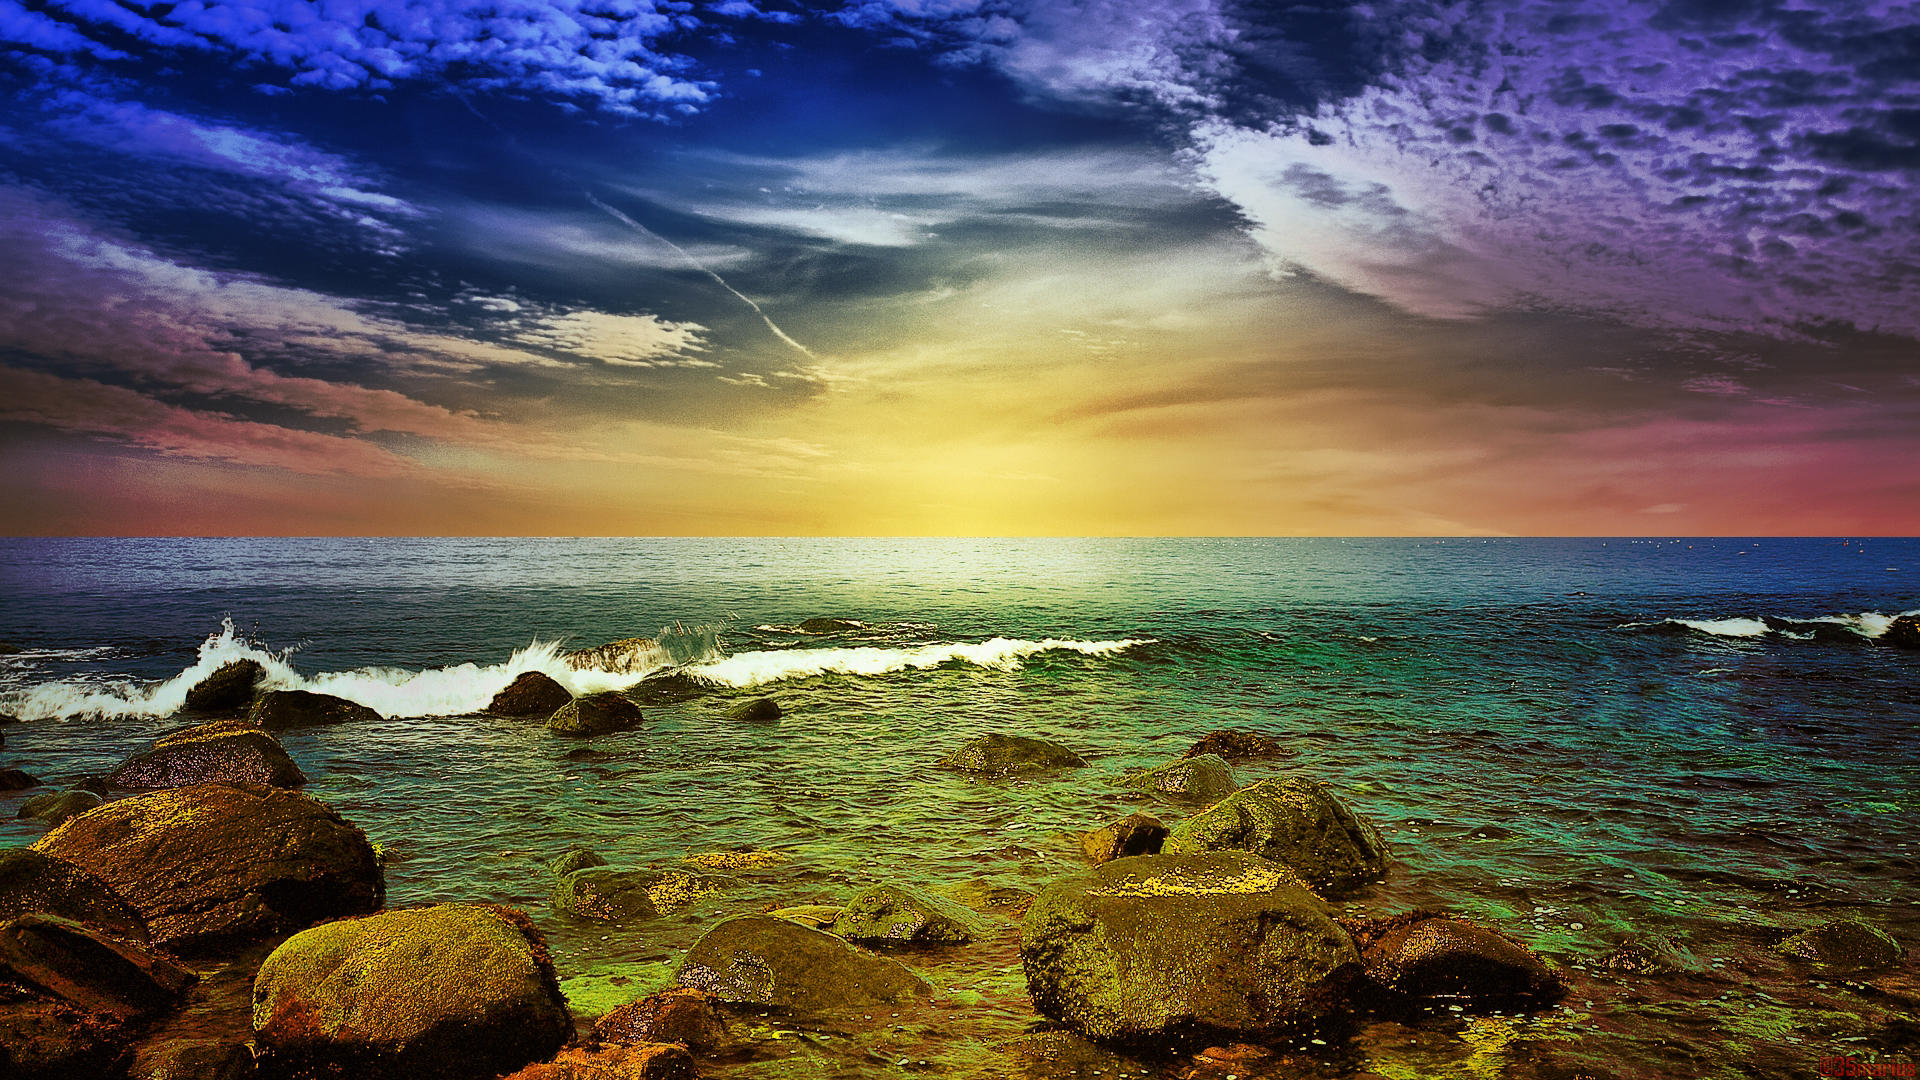 Magnificent Colorful Seascape wallpaper